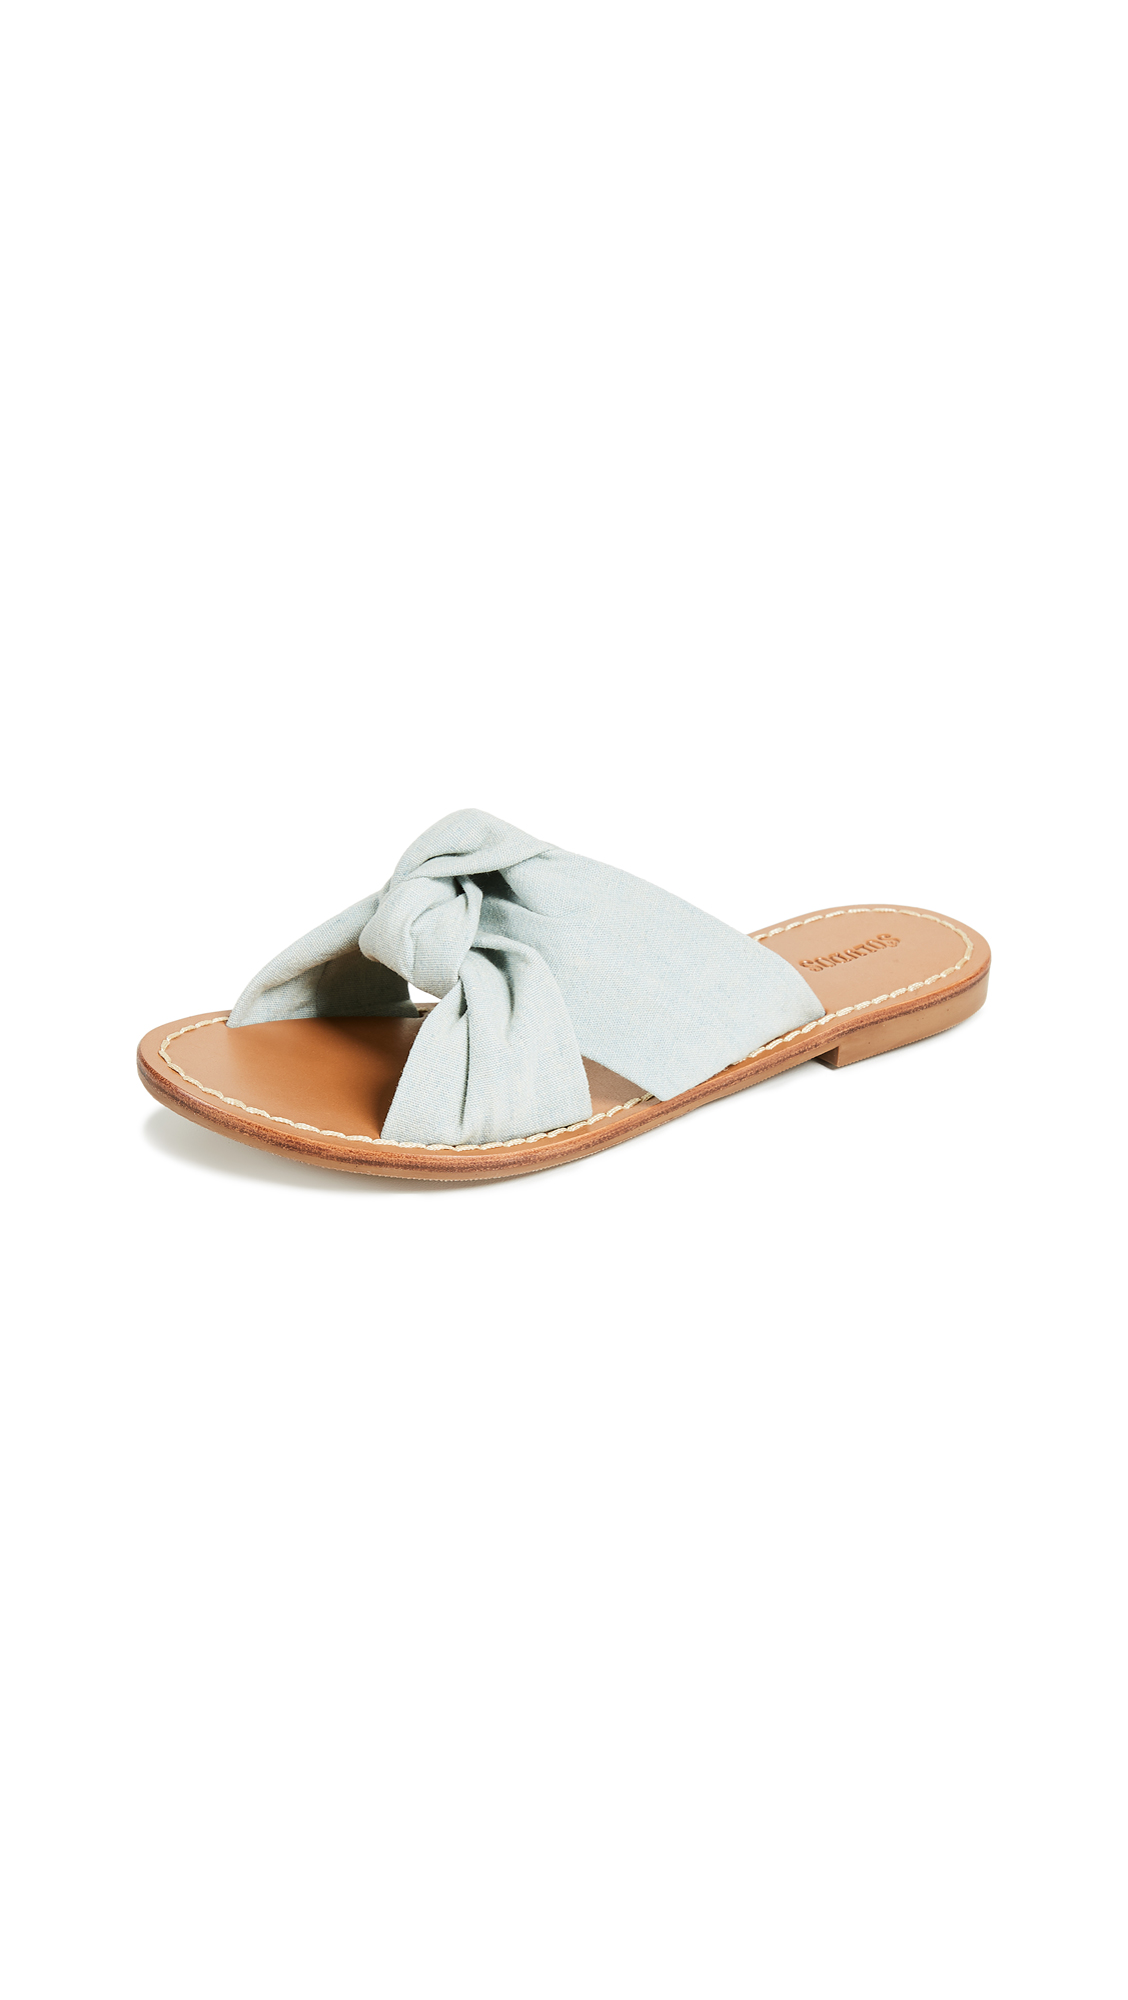 Soludos Knotted Slide Sandals - Chambray